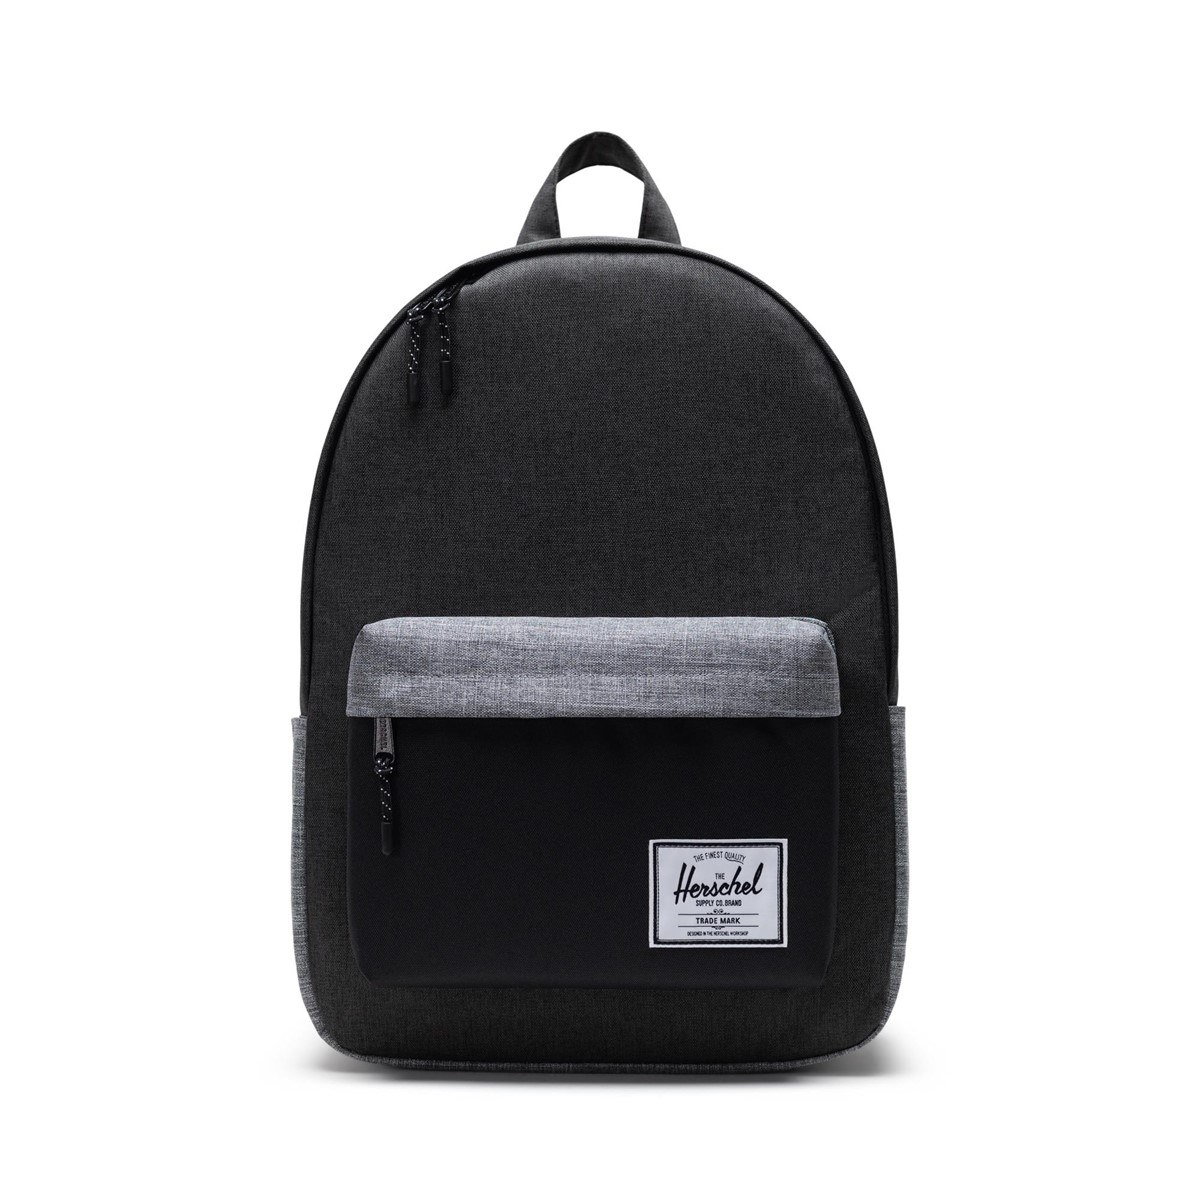 Classic XL Backpack in Black/Grey